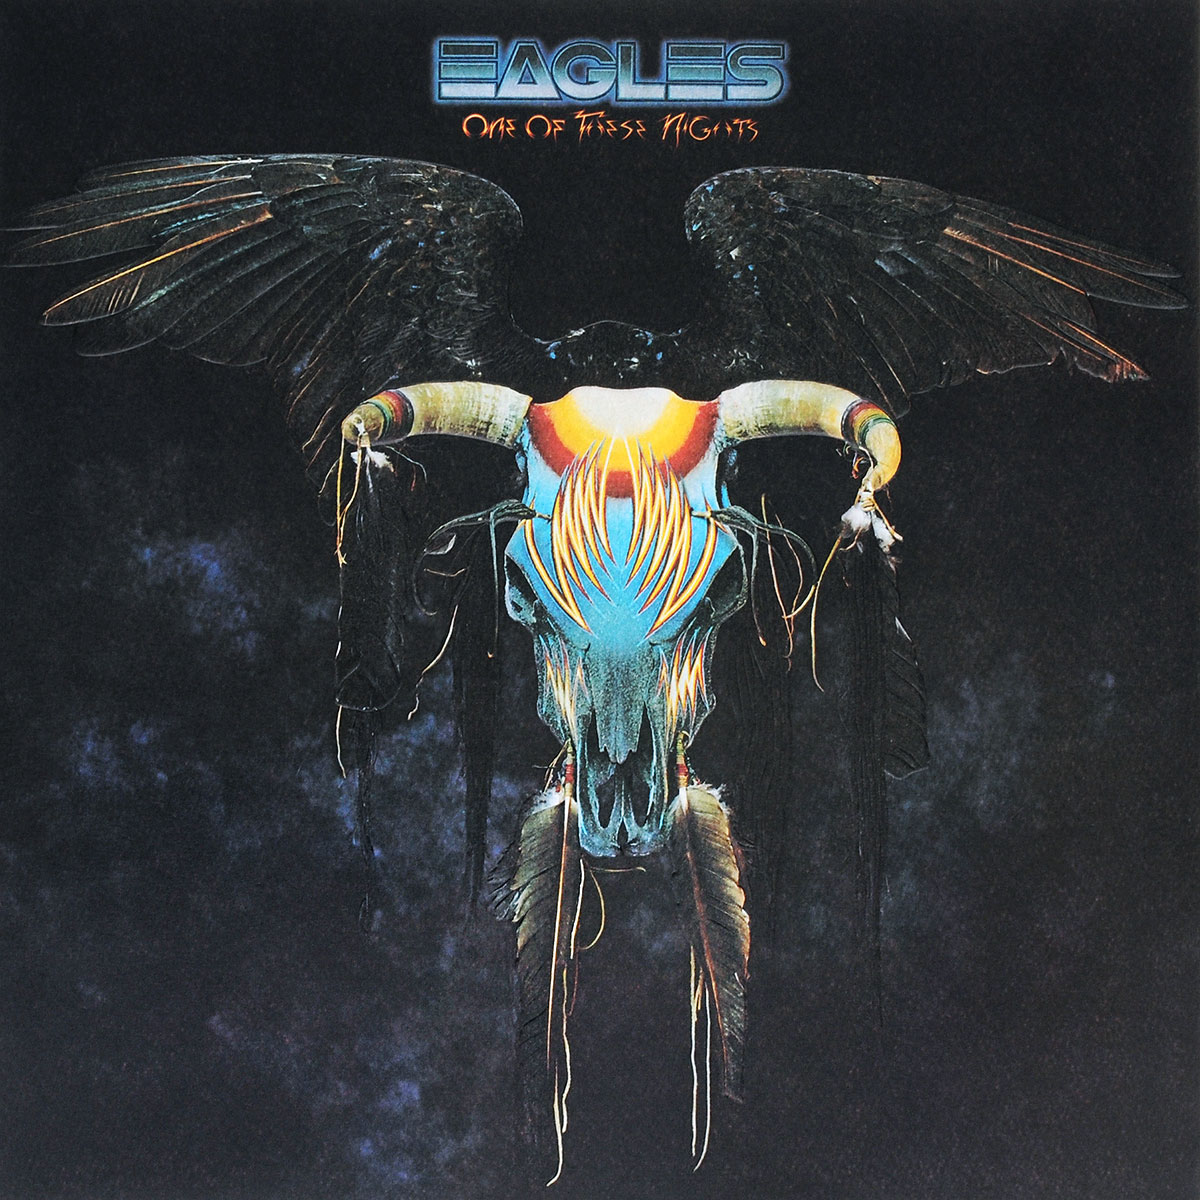 цена на The Eagles Eagles. One of These Nights (LP)